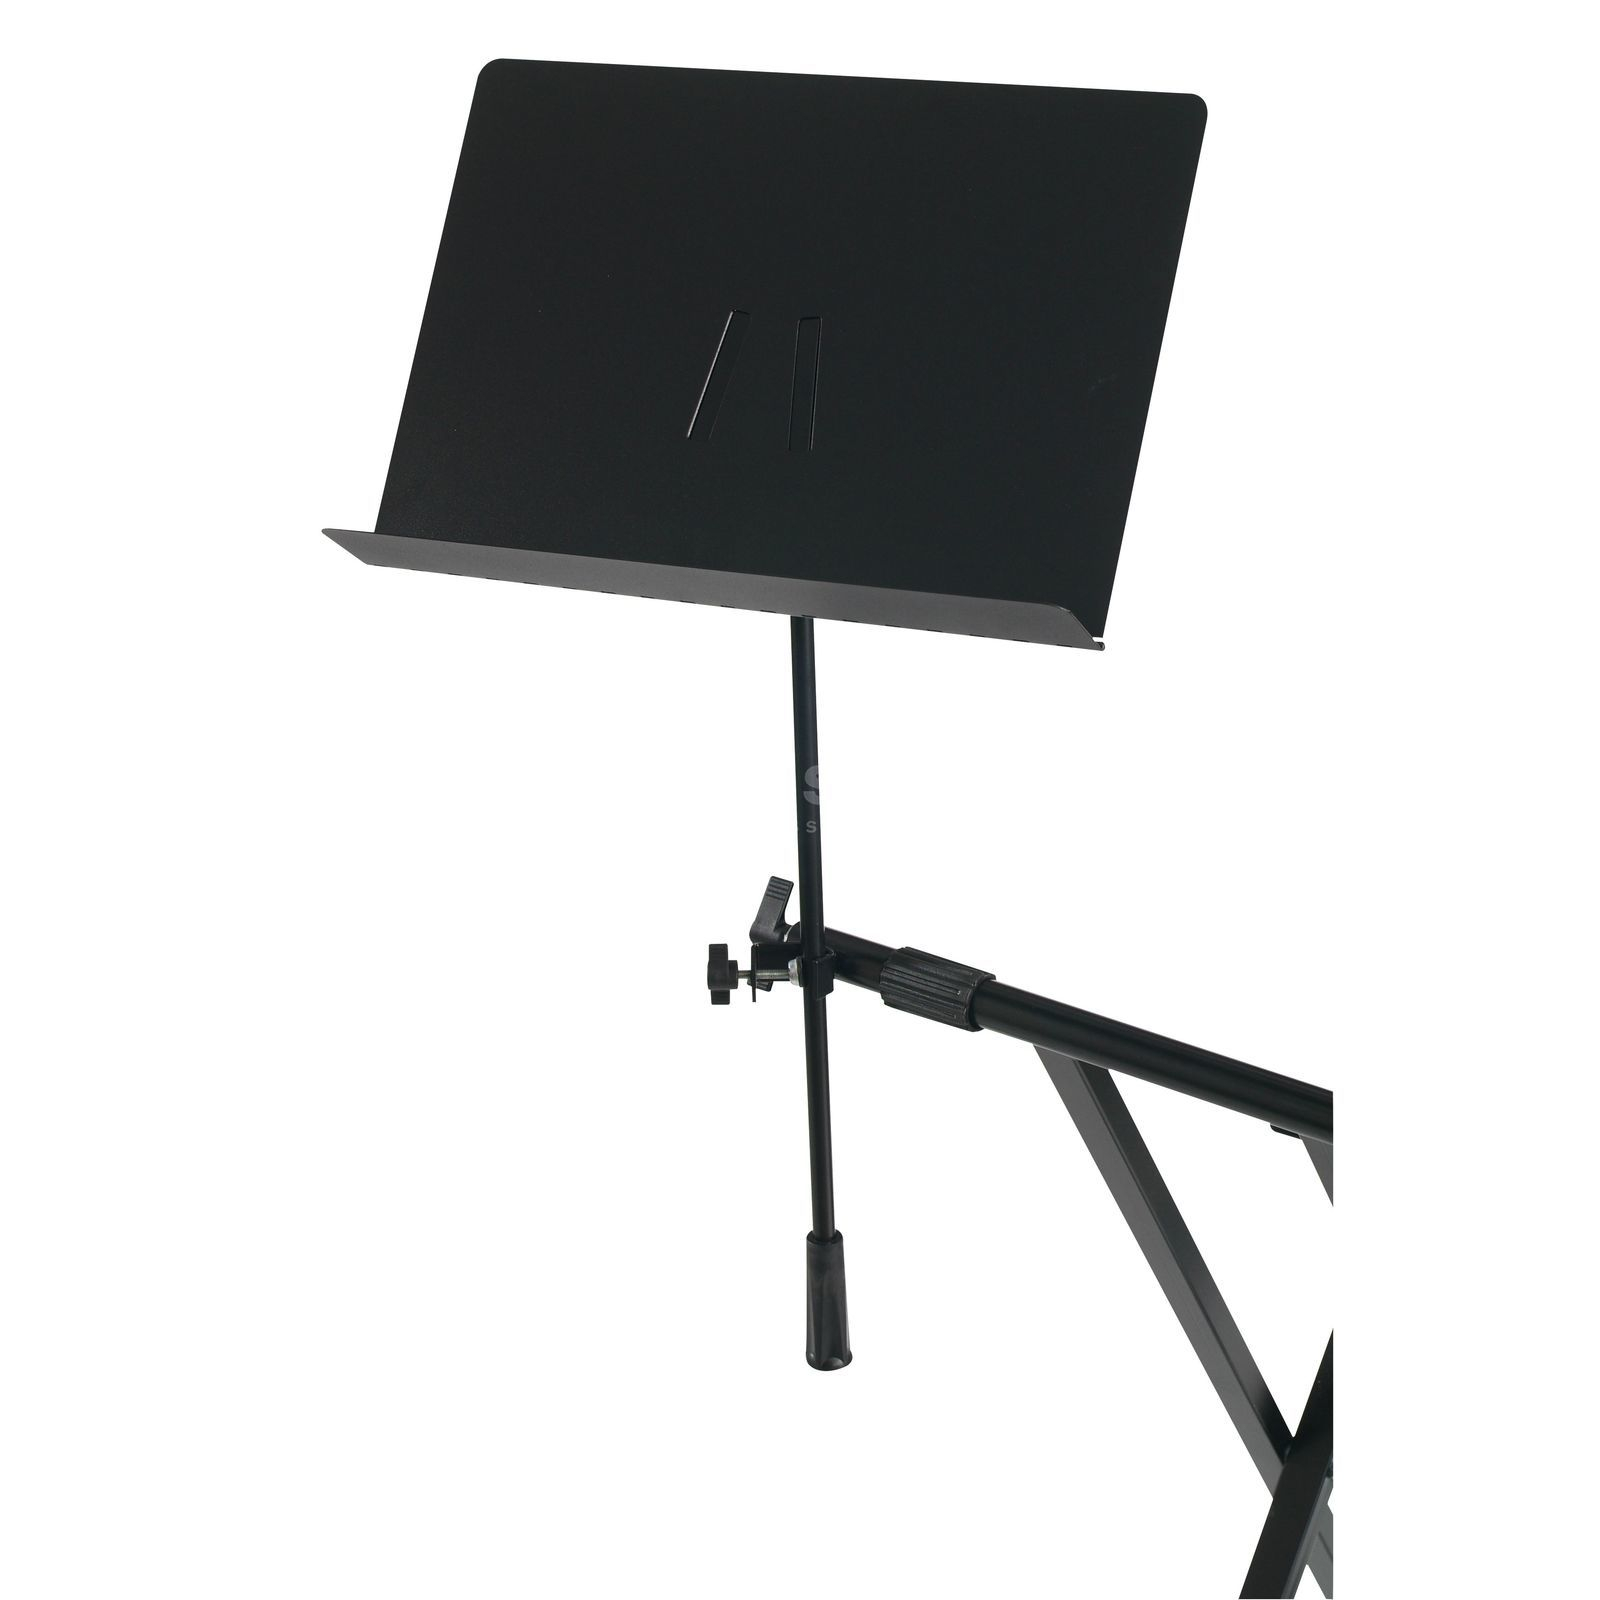 MUSIC STORE KB-D4 Music Rest Extension for X-stands Produktbillede